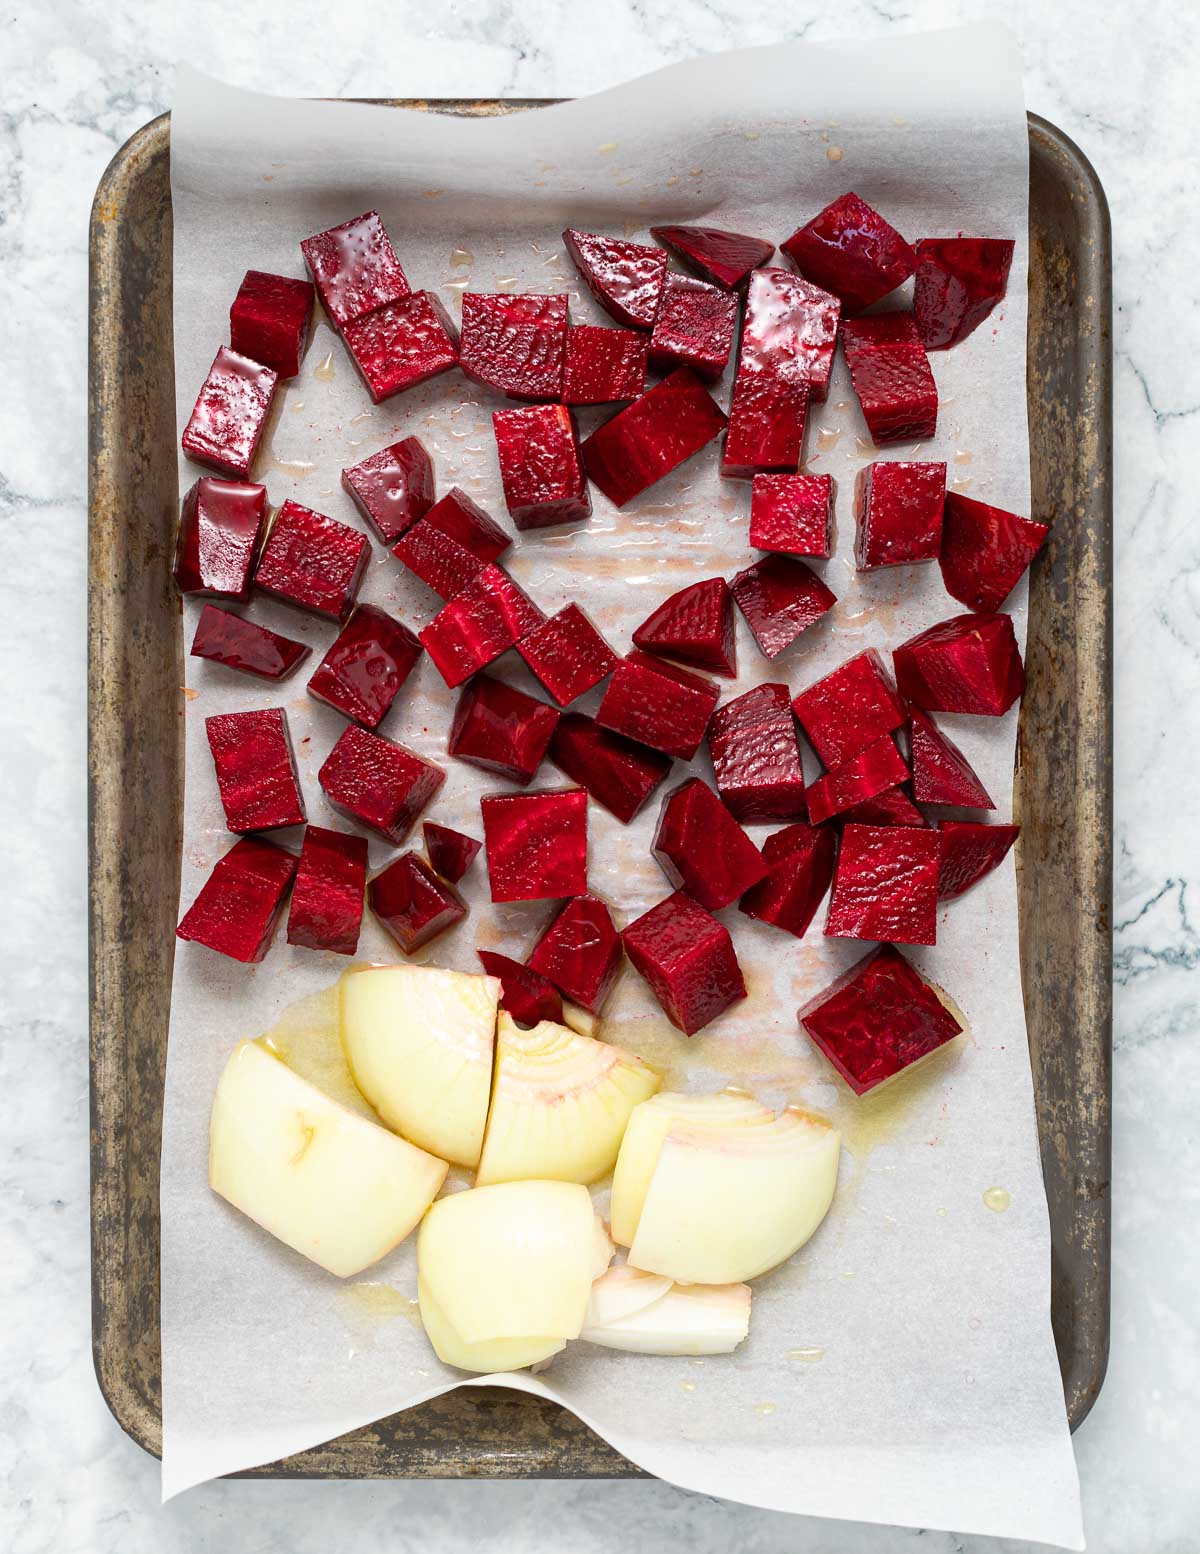 beets and onion on a baking tray